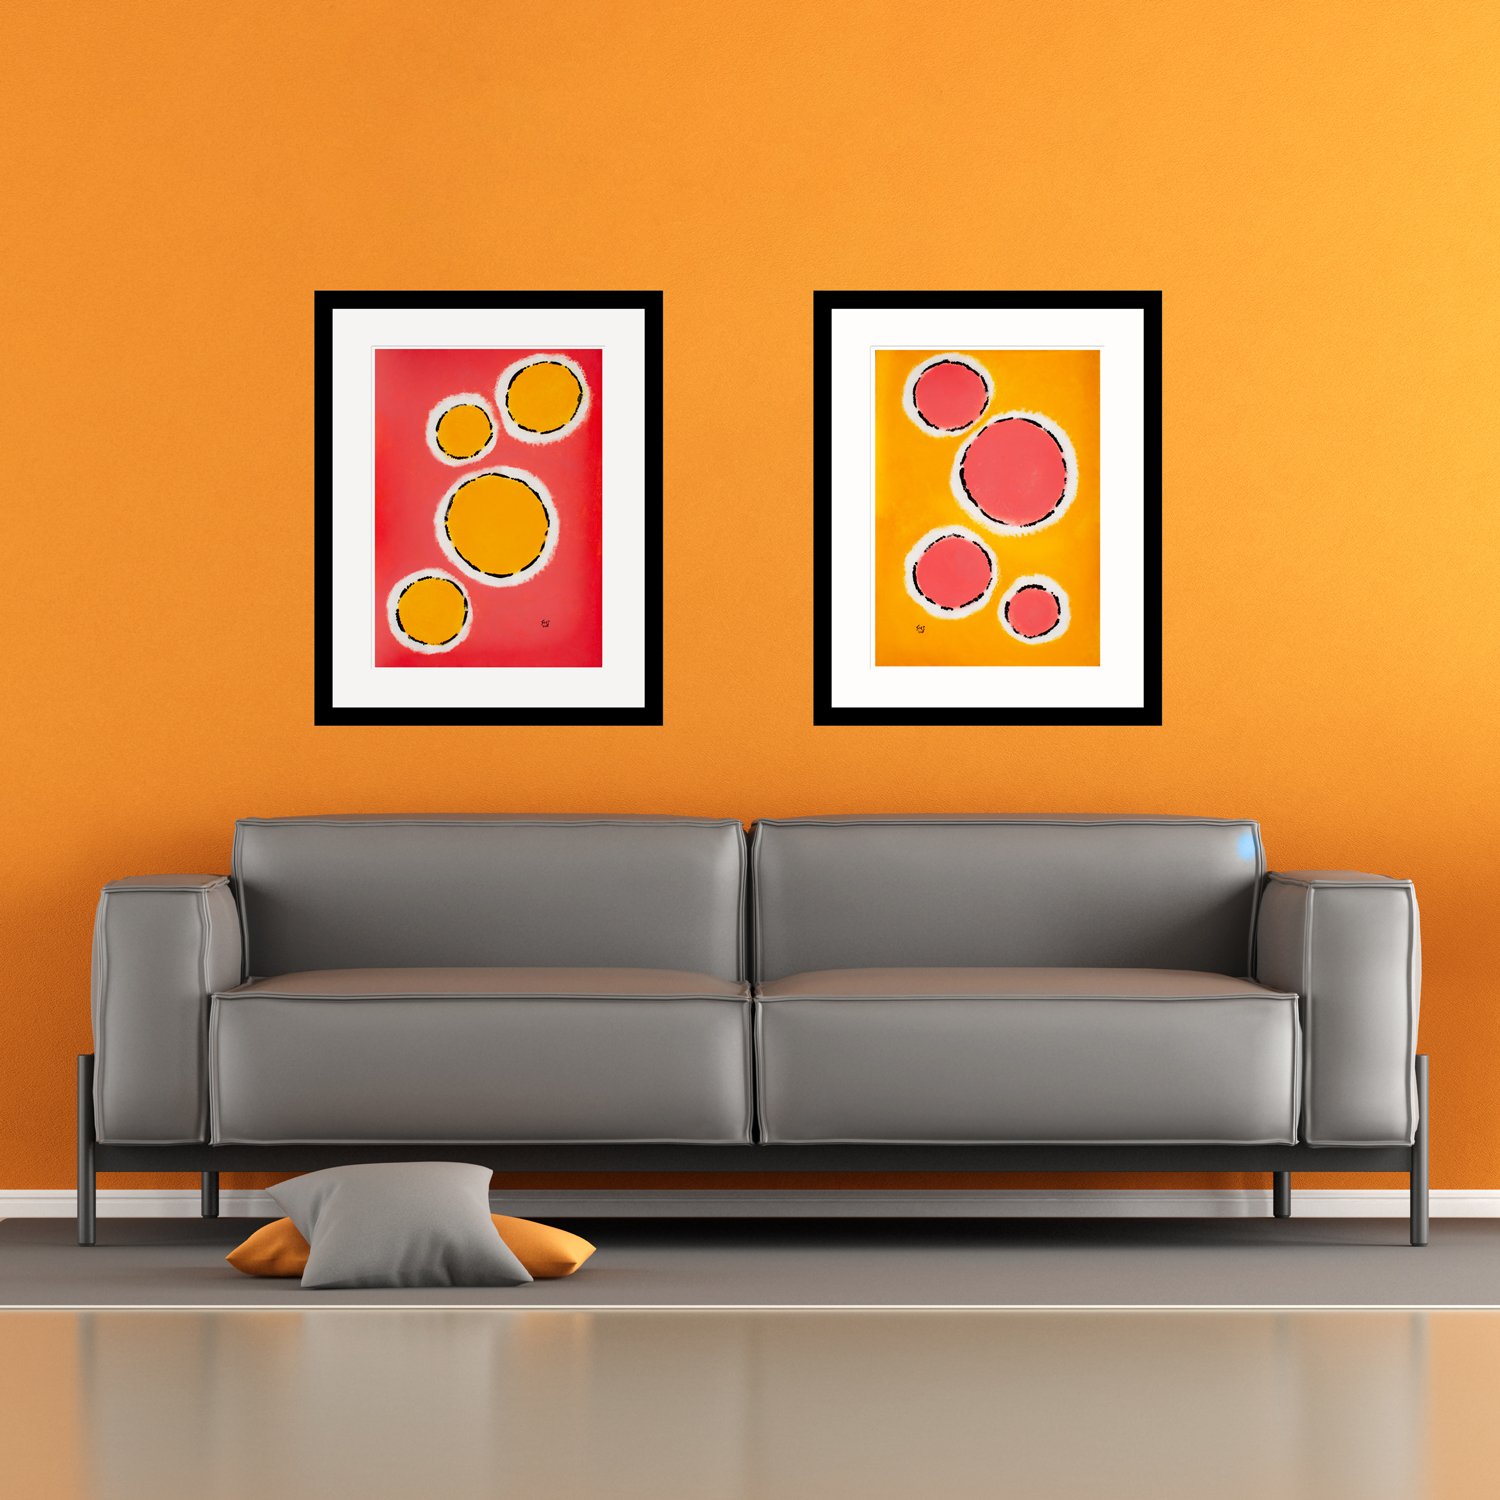 Happy-Cells-Peach-&-Coral-modern-art